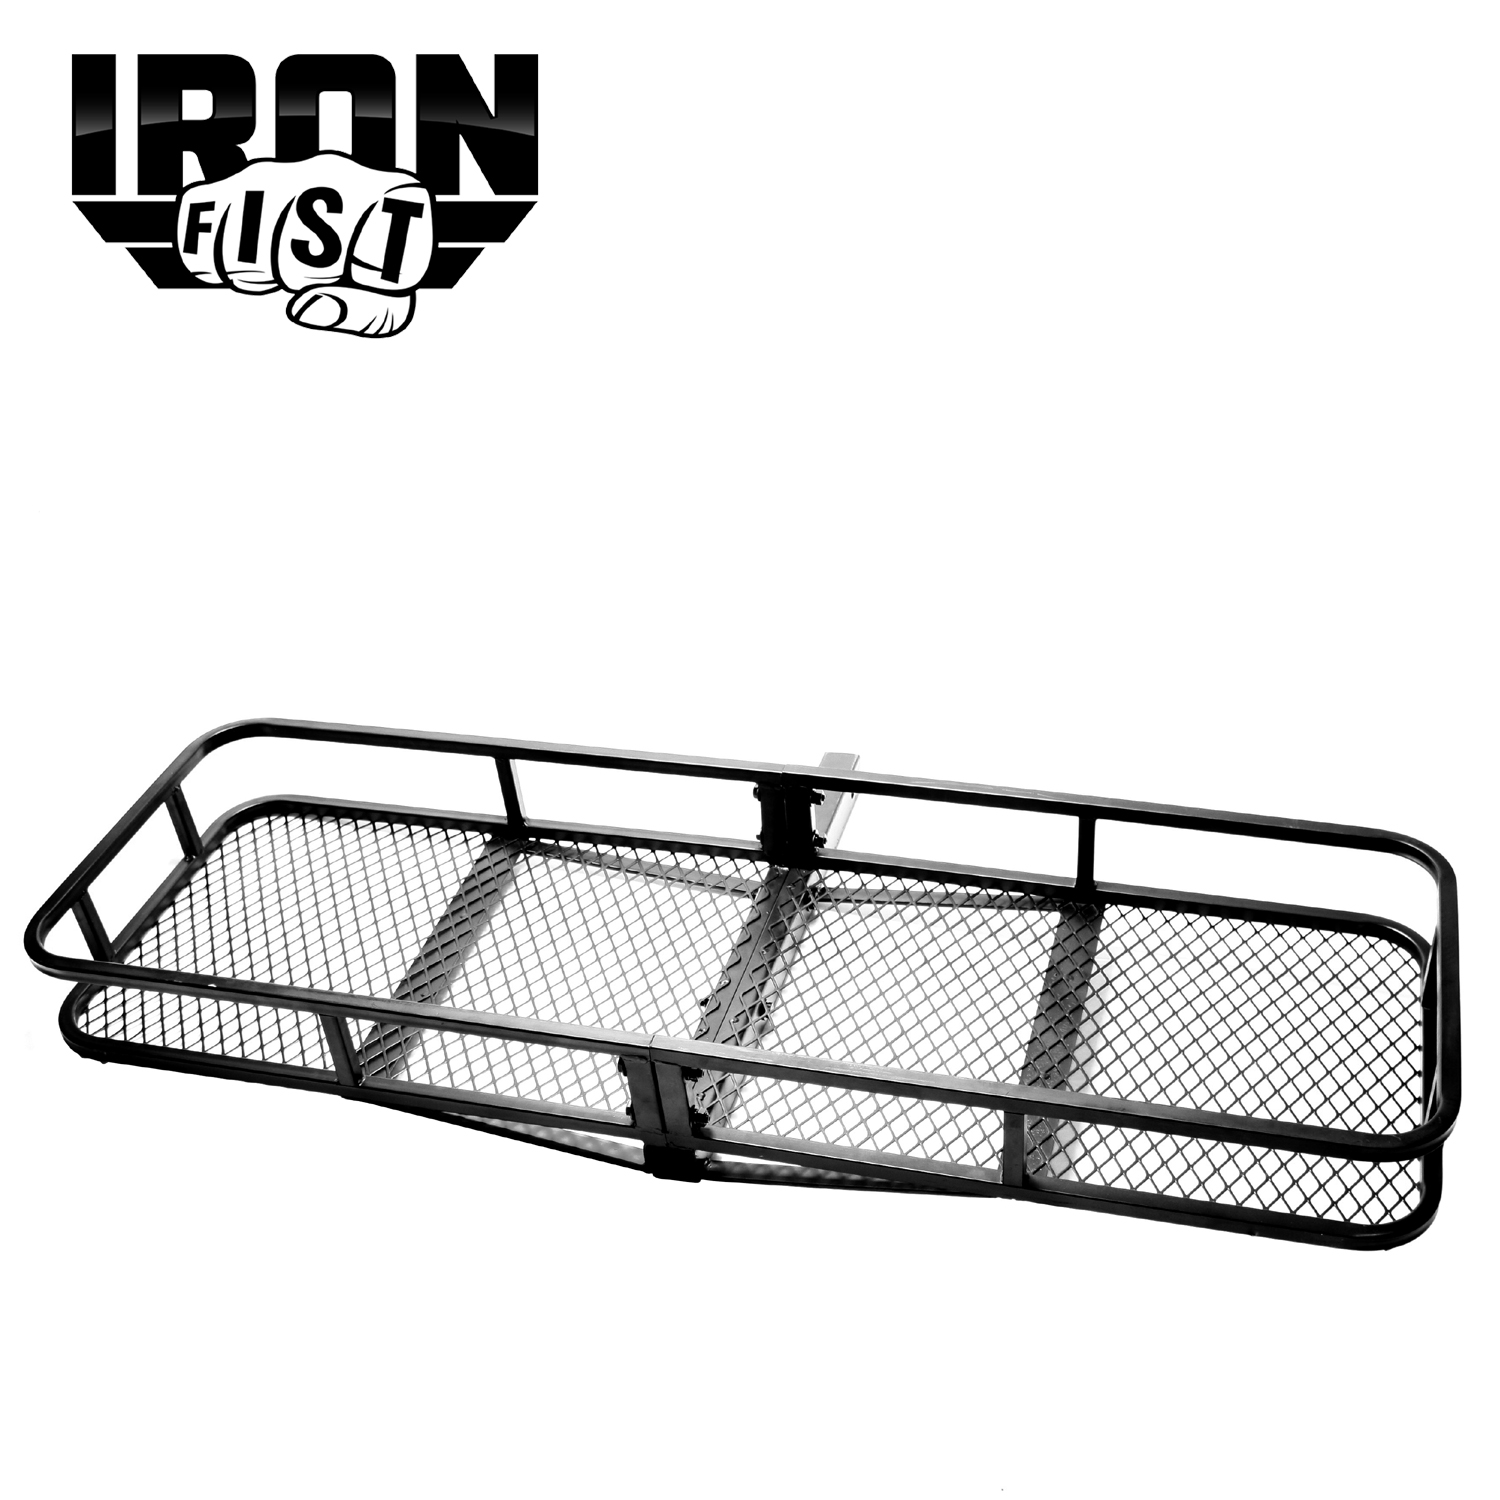 Iron Fist 60 Folding Cargo Carrier Basket Hitch Hauler